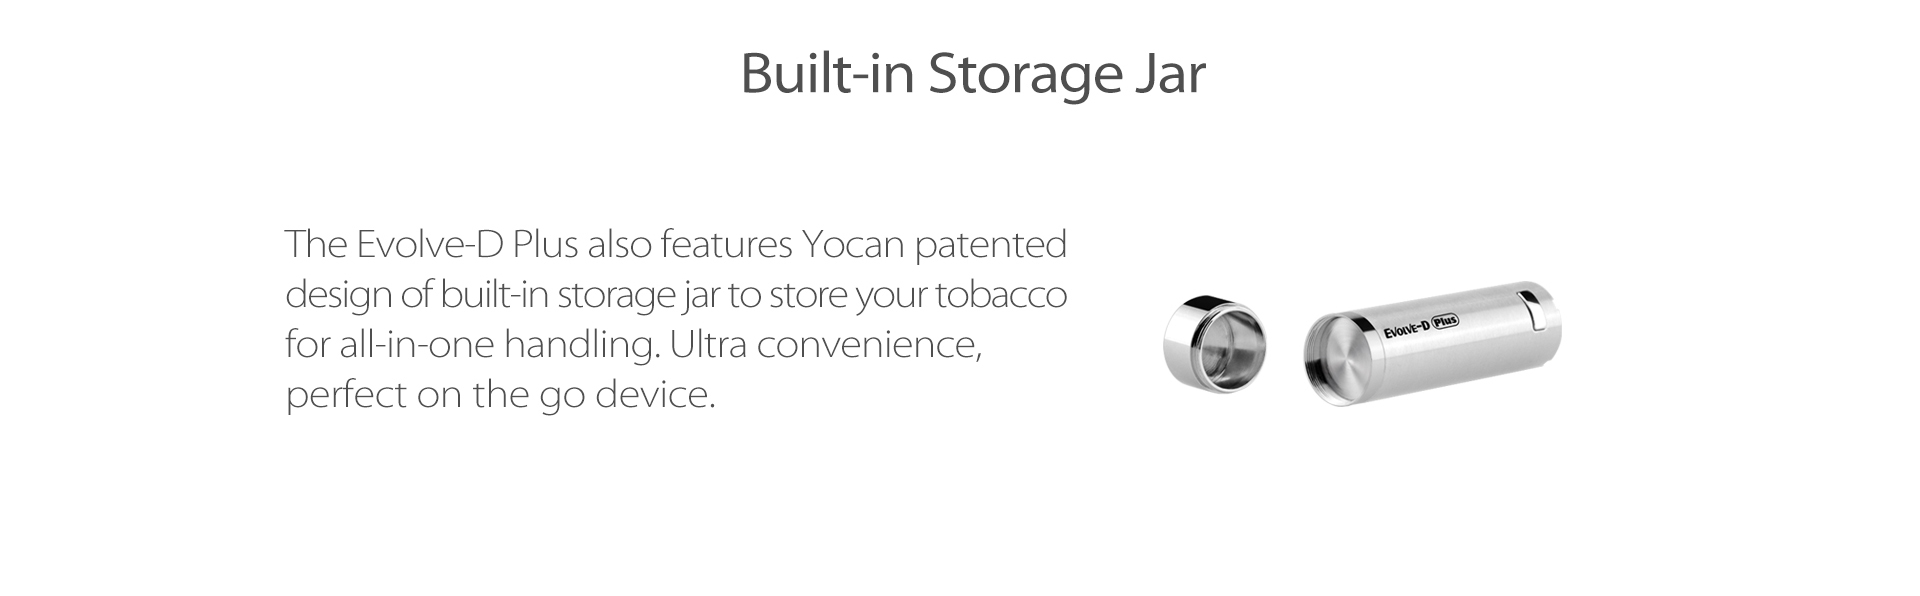 The base of Yocan Evolve-D Plus vaporizer pen 2020 version featues built-in storage jar for extra dry herb